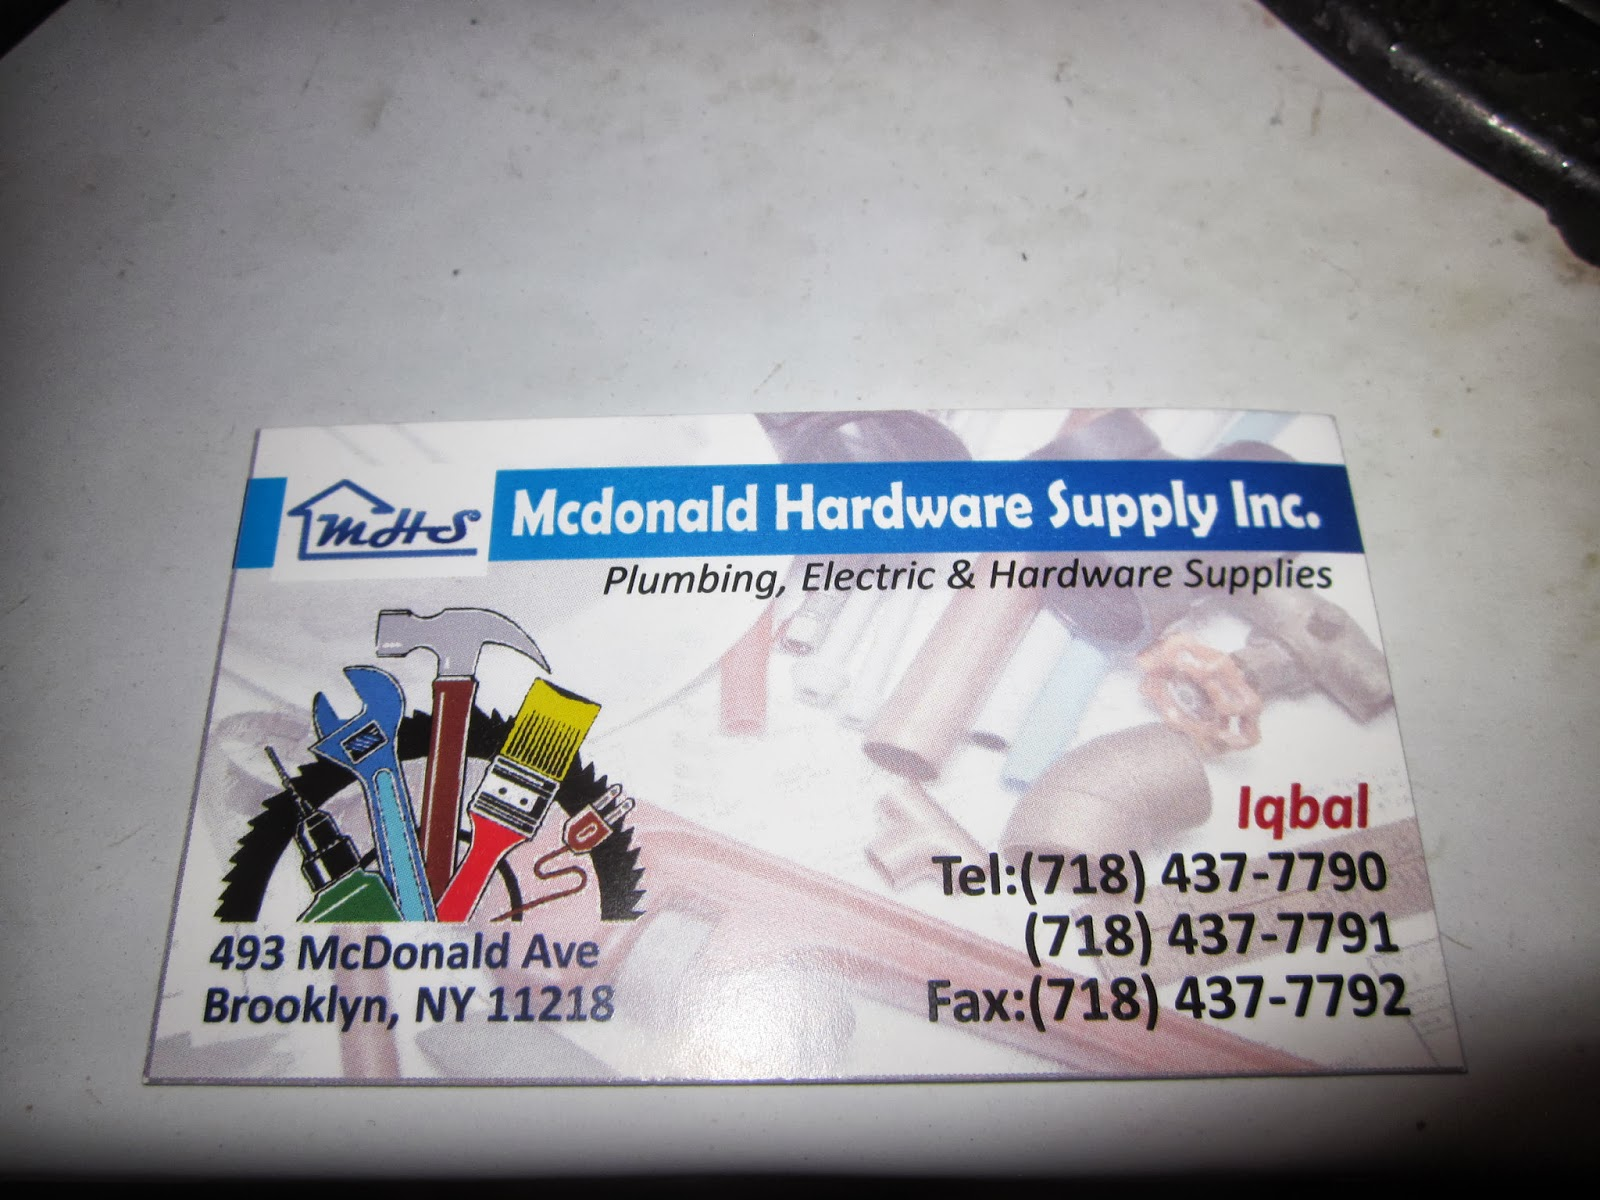 Business cards for hardware store image collections card design karmabrooklyn blog check out mcdonald hardware supply mcdonald hardware supply 493 mcdonald avenue between church avenue magicingreecefo Choice Image